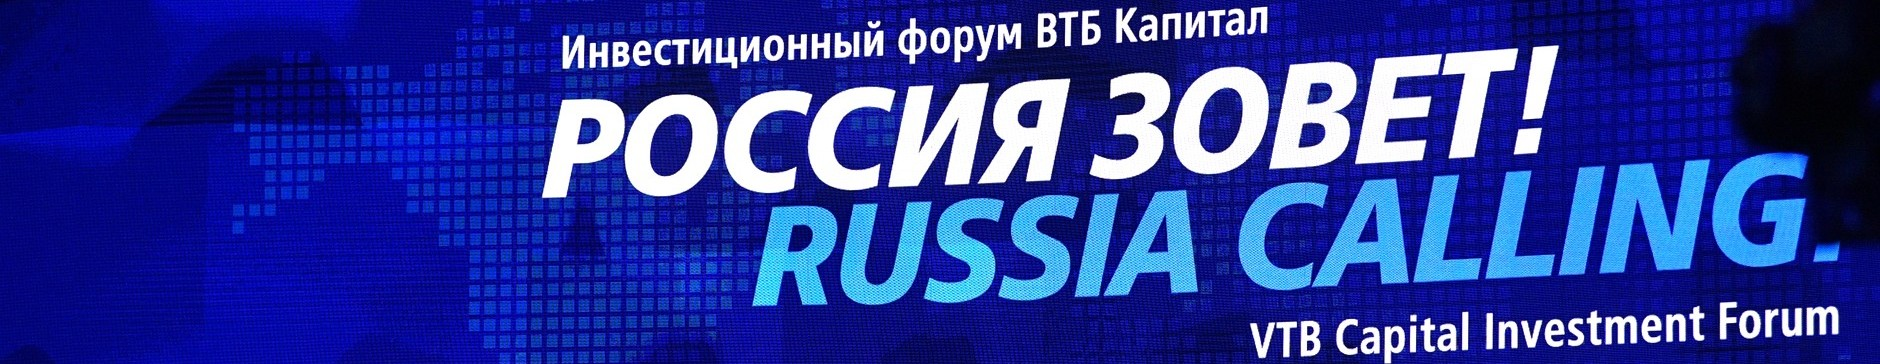 VTB Capital Investment Forum 02 (cropped).jpg